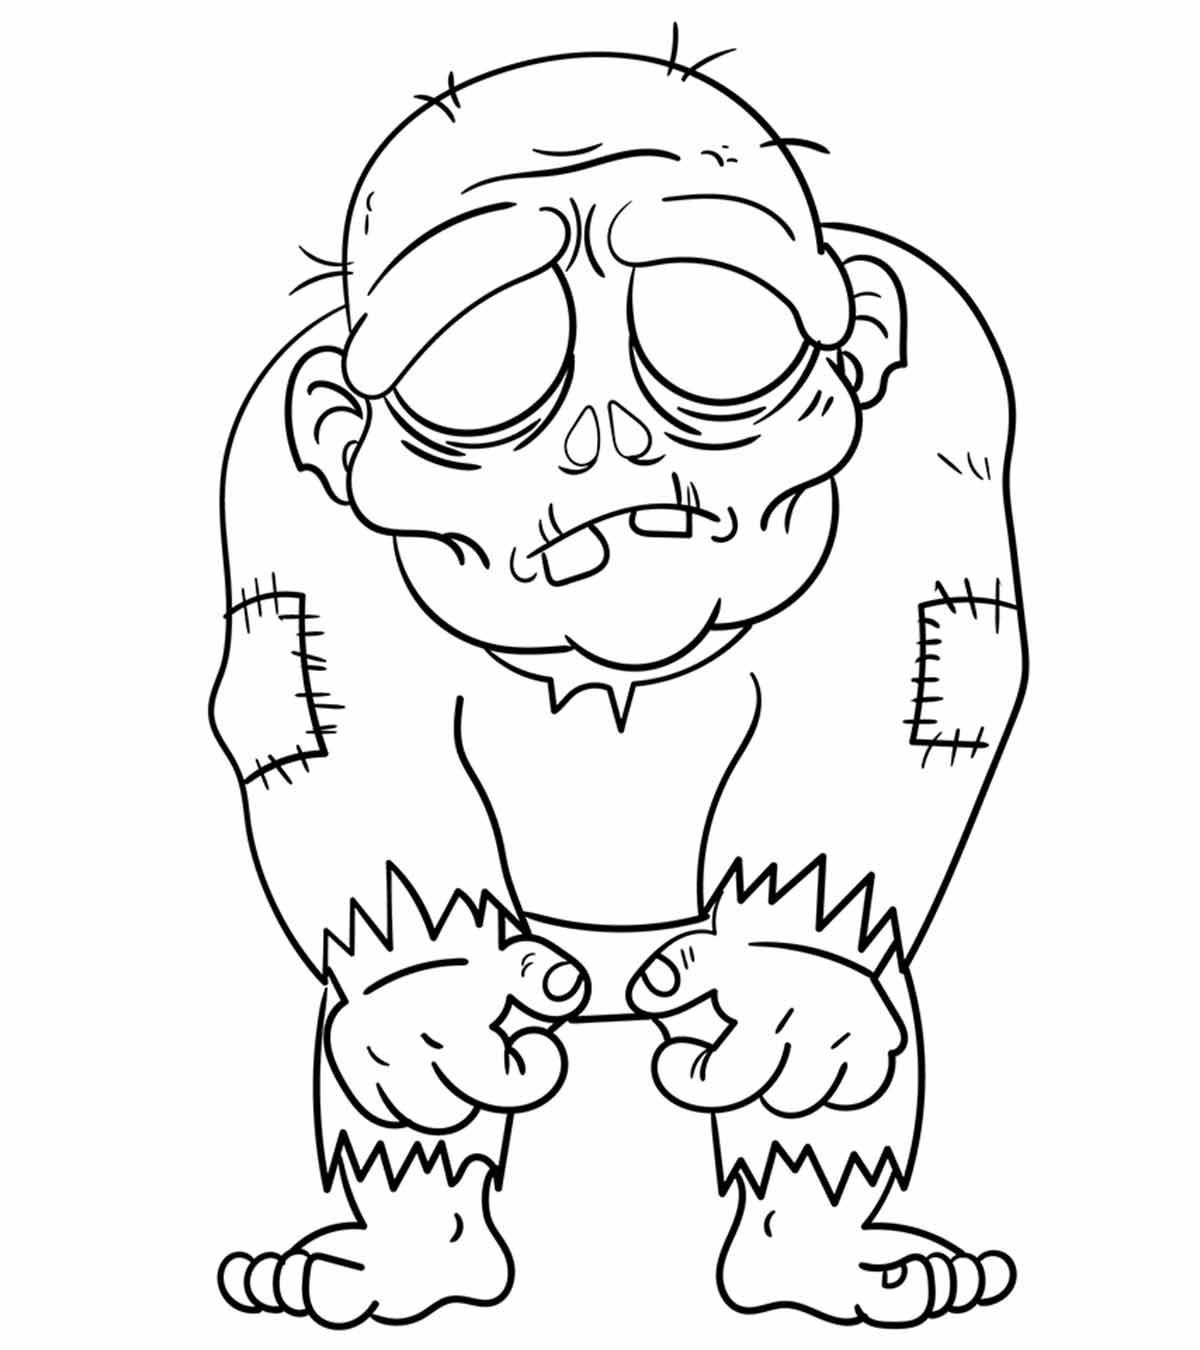 coloring page zombie 83 best zombie coloring images on pinterest coloring coloring page zombie